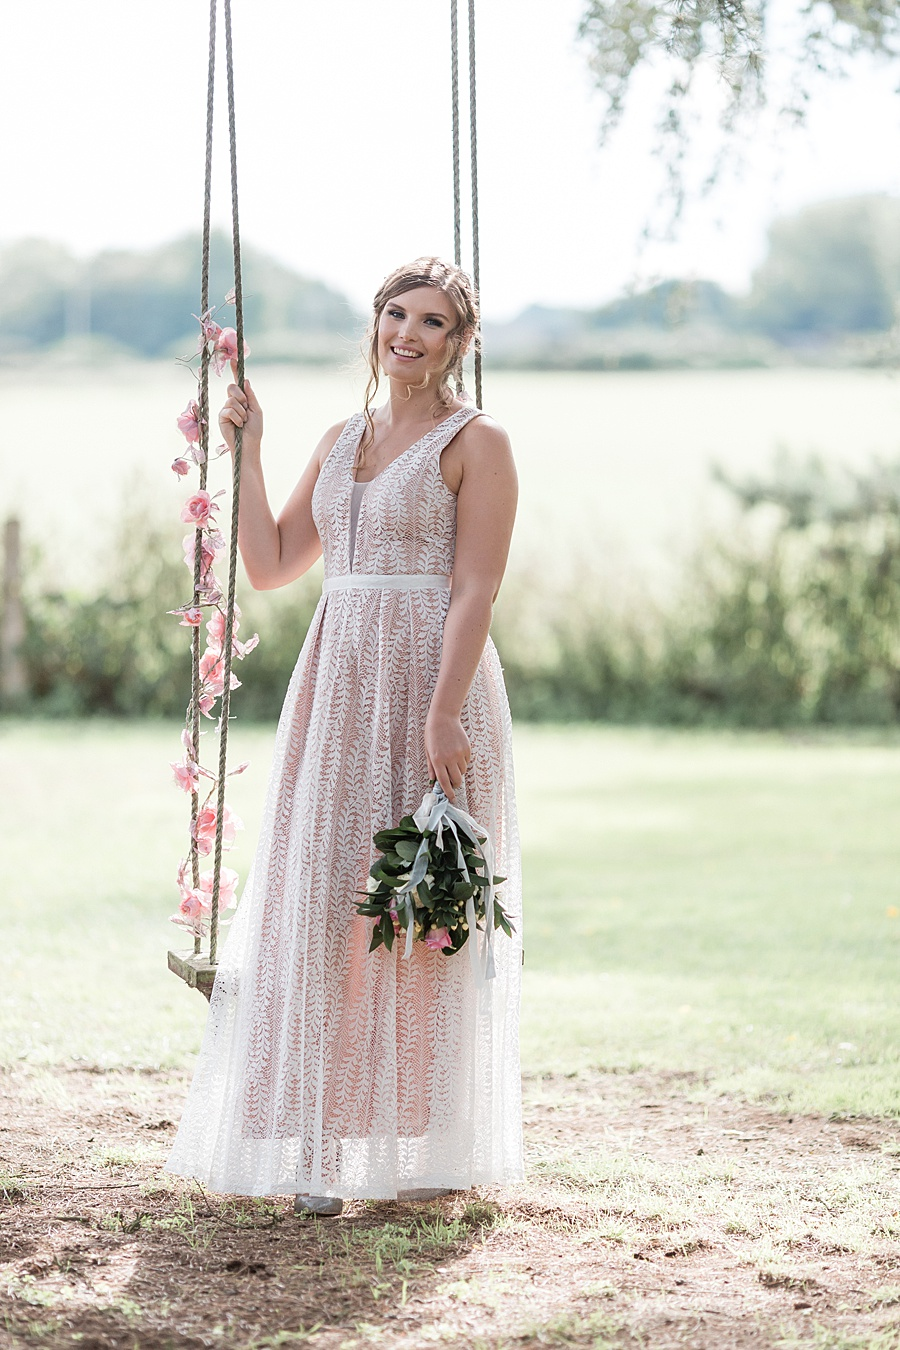 Neutral organic and minimal wedding style ideas from Kingsdown Rectory. Styling Your Wedding Your Way Images Kate Hennessey Photography (16)